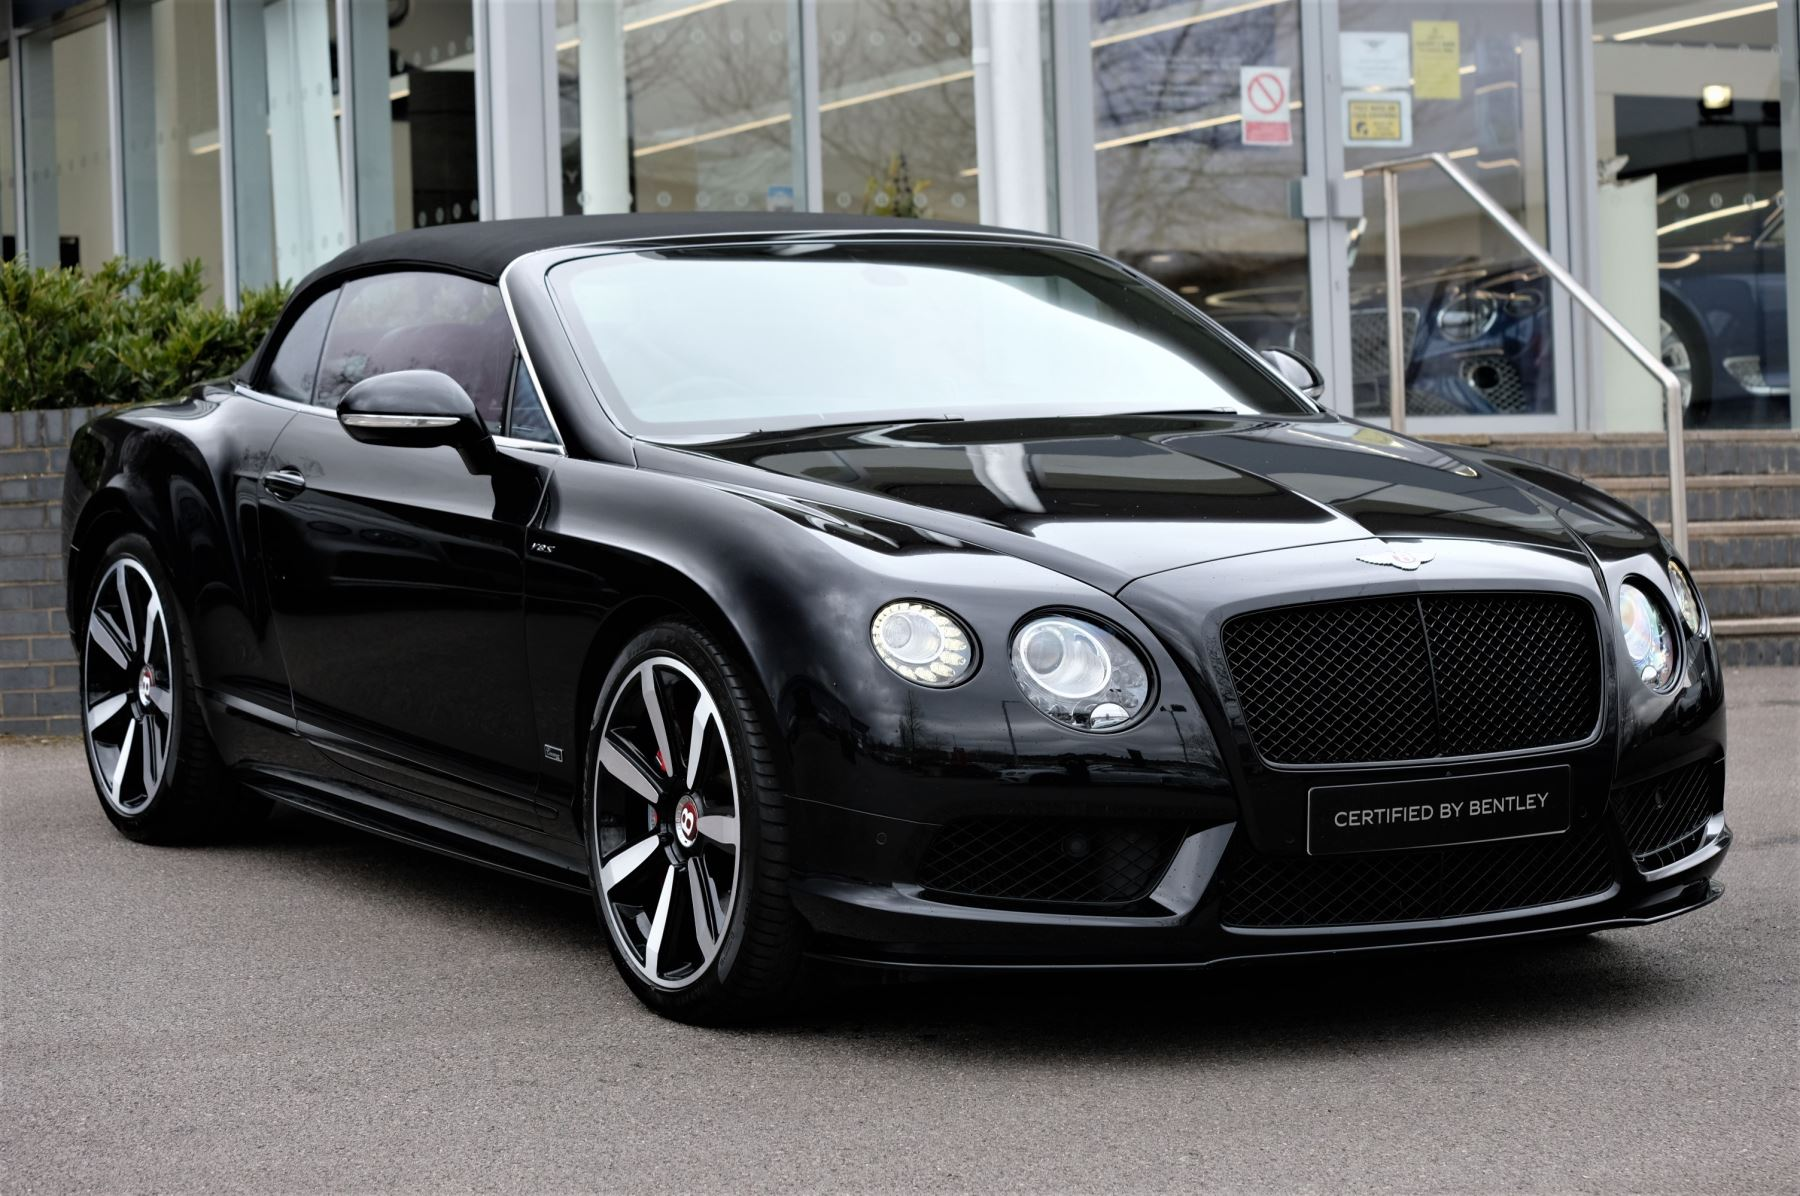 Bentley Continental GT V8 S Convertible Black Edition 4.0 V8 S 2dr - Concours Series  Automatic Convertible